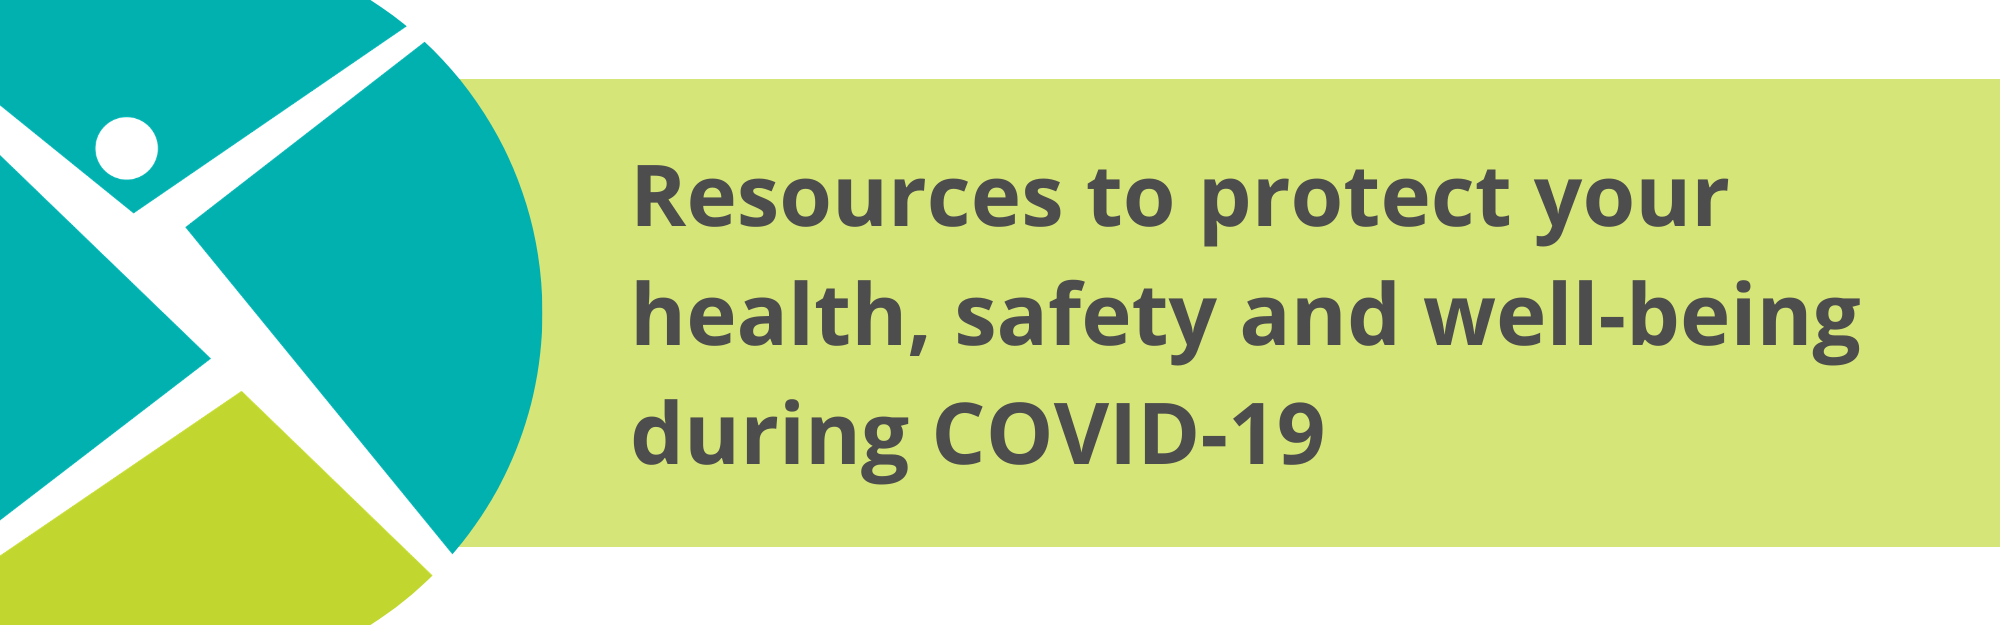 Resources to protect your health, safety and well-being during COVID-19